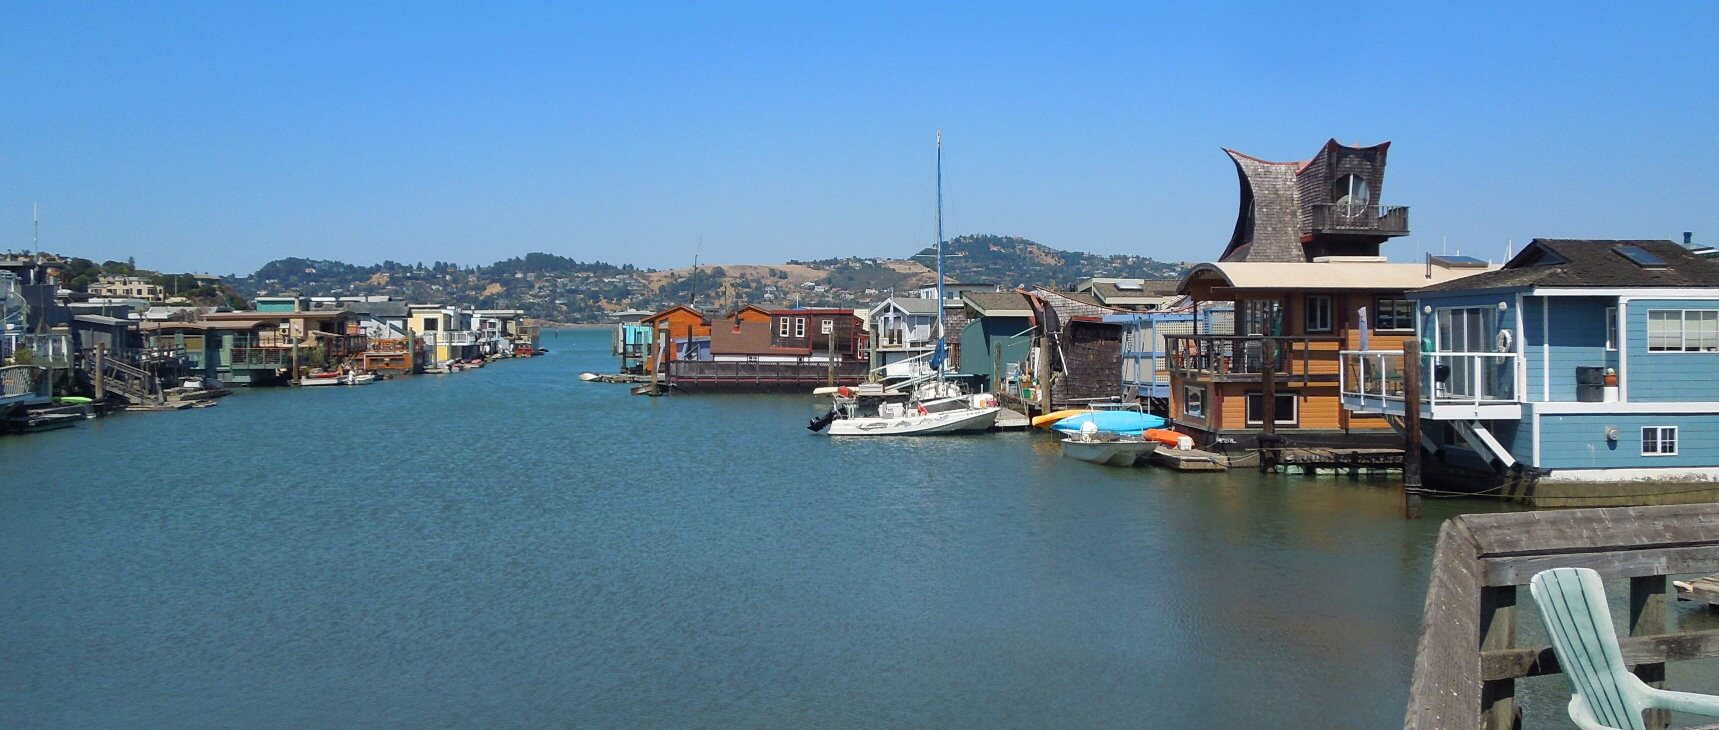 muir_wood_&_sausalito_day_tour_from_san_francisco